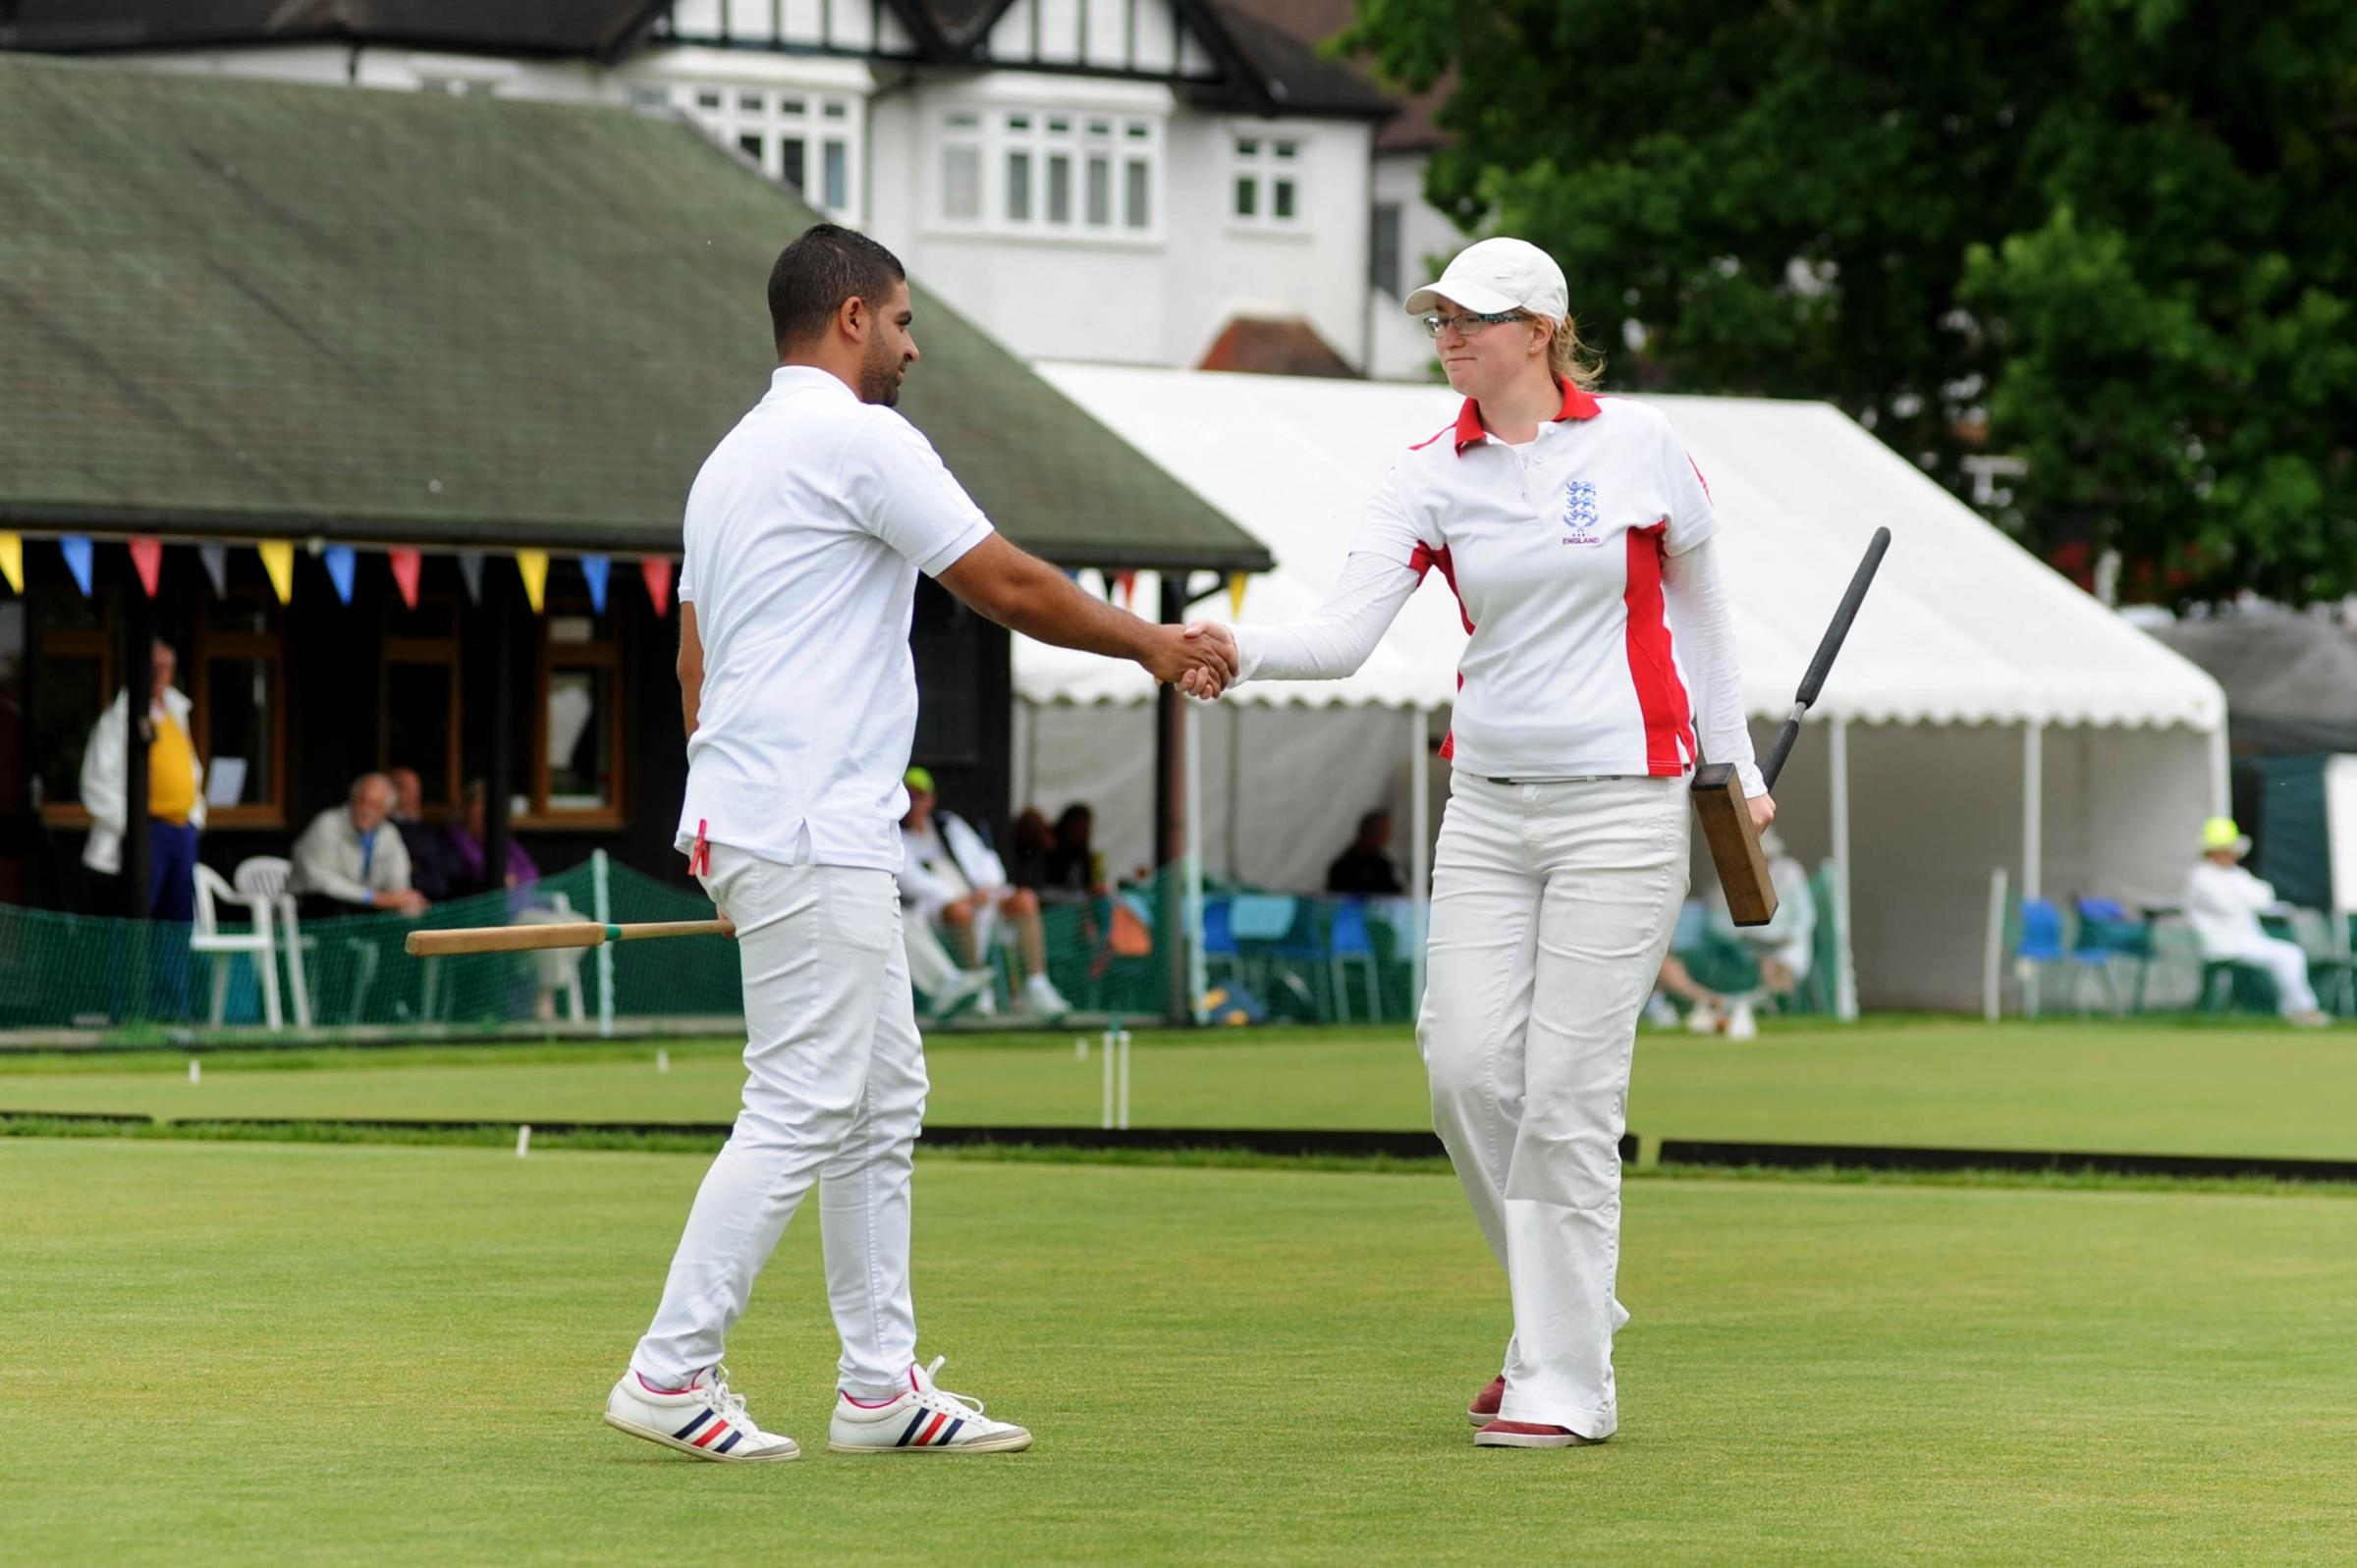 Disappointed: England's Rachel Lowe shakes hands with Egypt's Mohamed Kerem after defeat this week